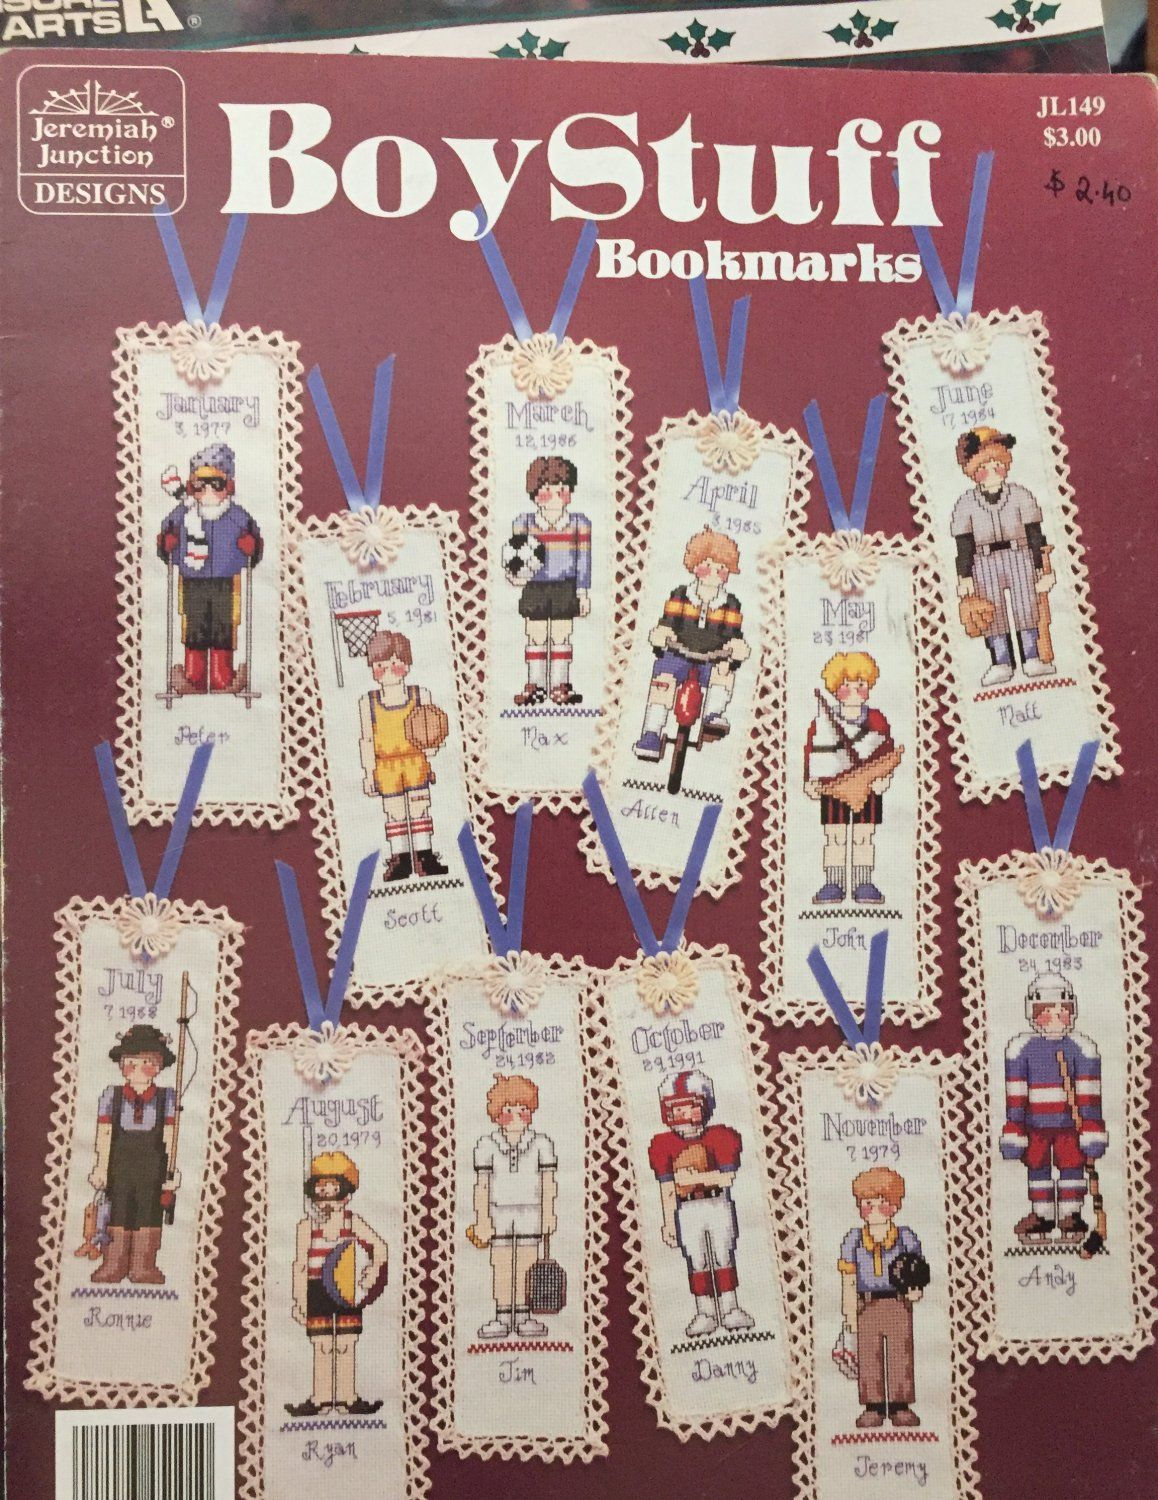 This pattern has a different bookmark featuring boys dressed as football, baseball, soccar, tennis, hocky players and more!  Great gift for a young ma